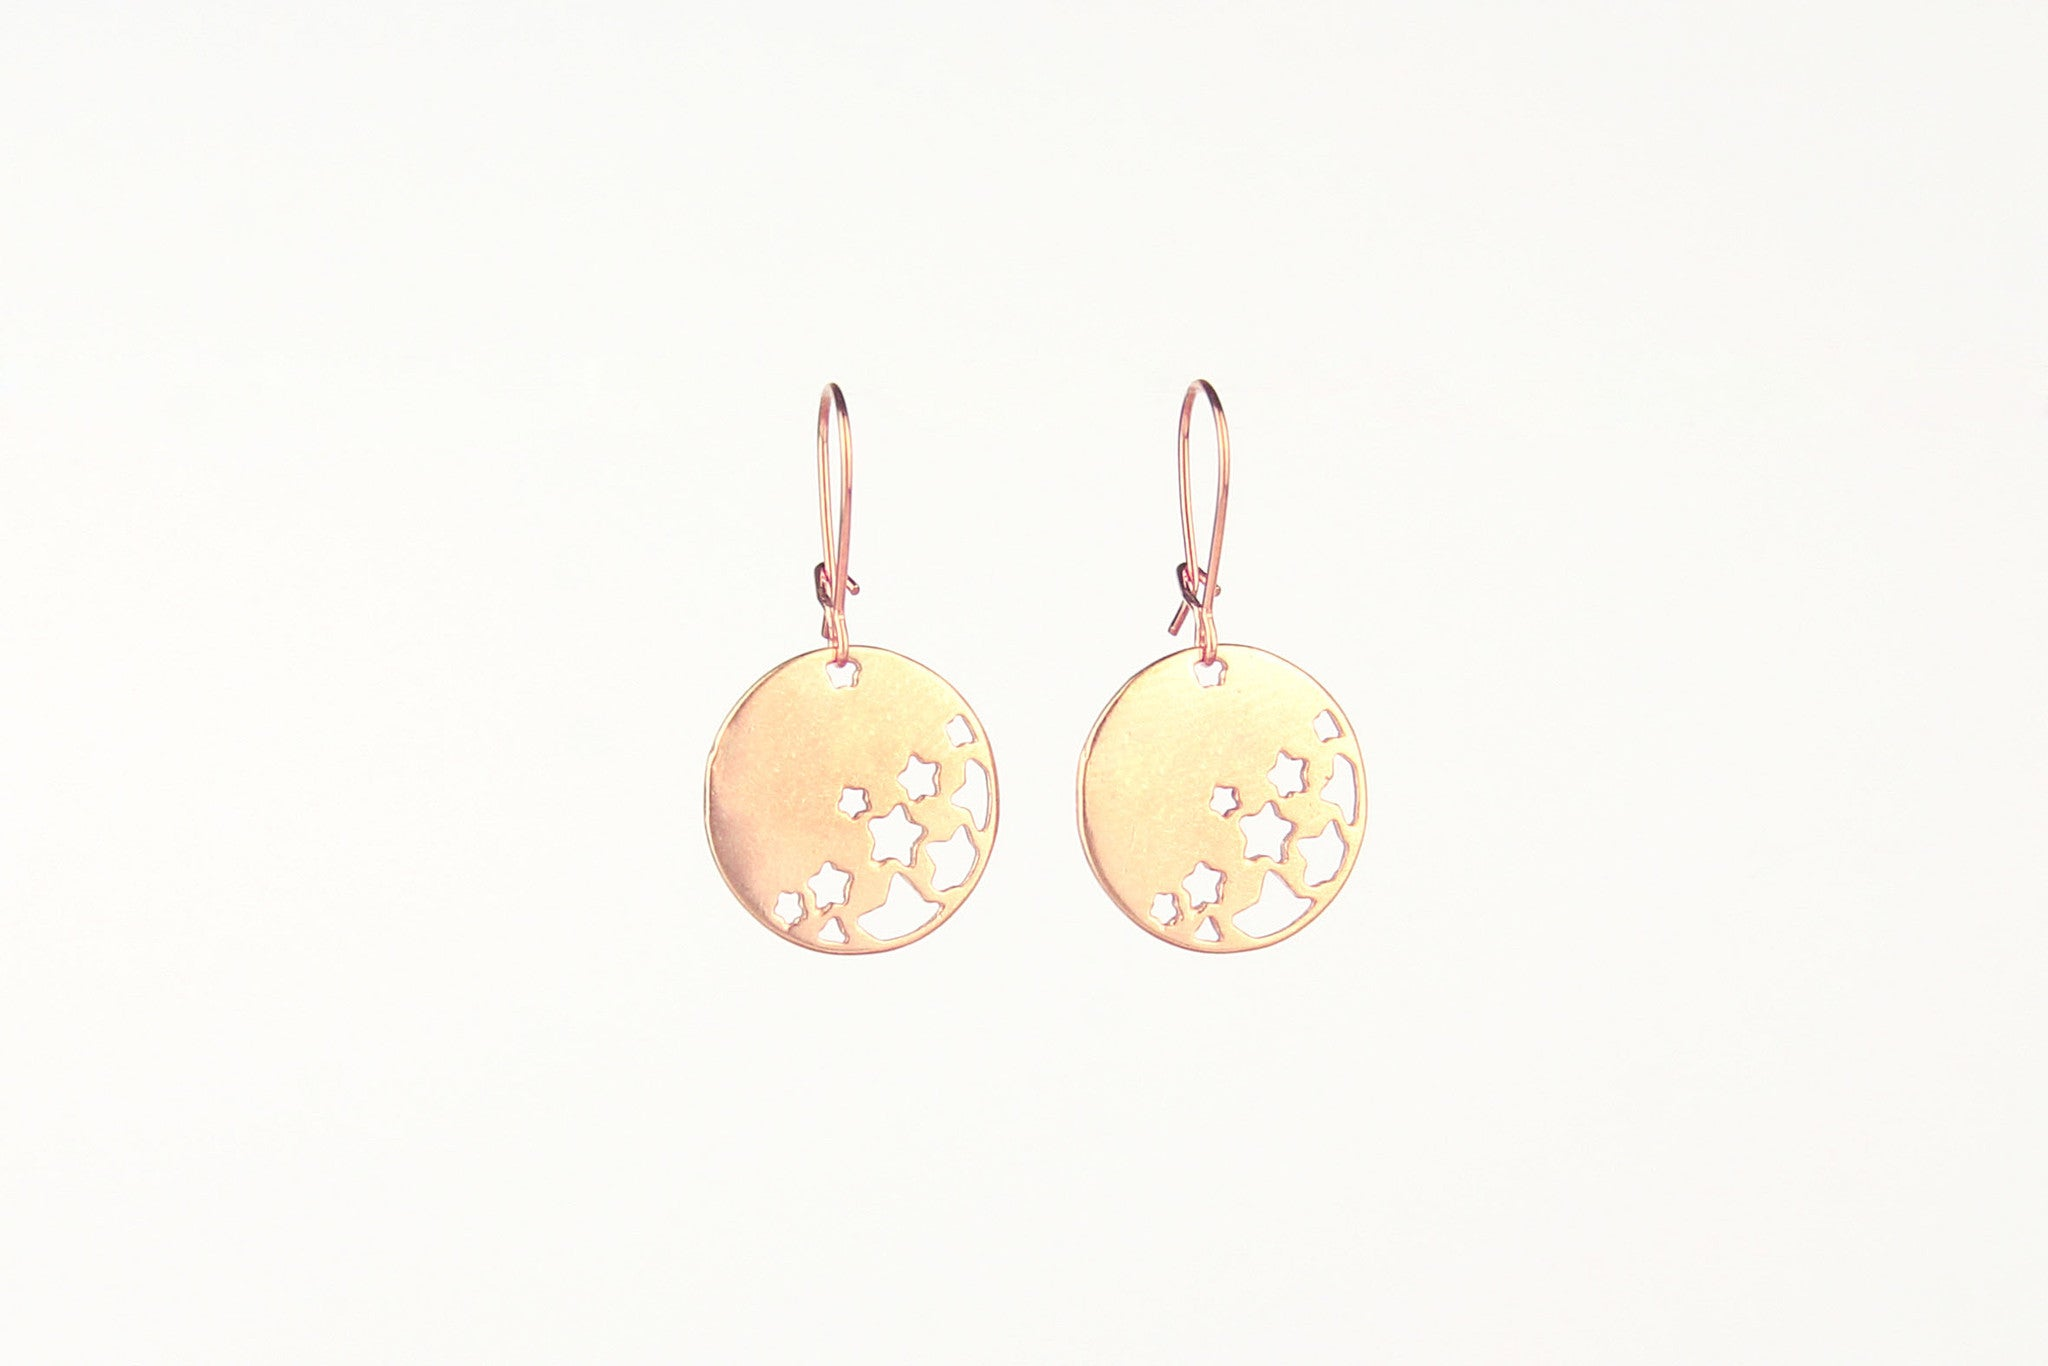 jewelberry ohrringe earrings night sky rose gold plated sterling silver fine jewelry handmade with love fairtrade